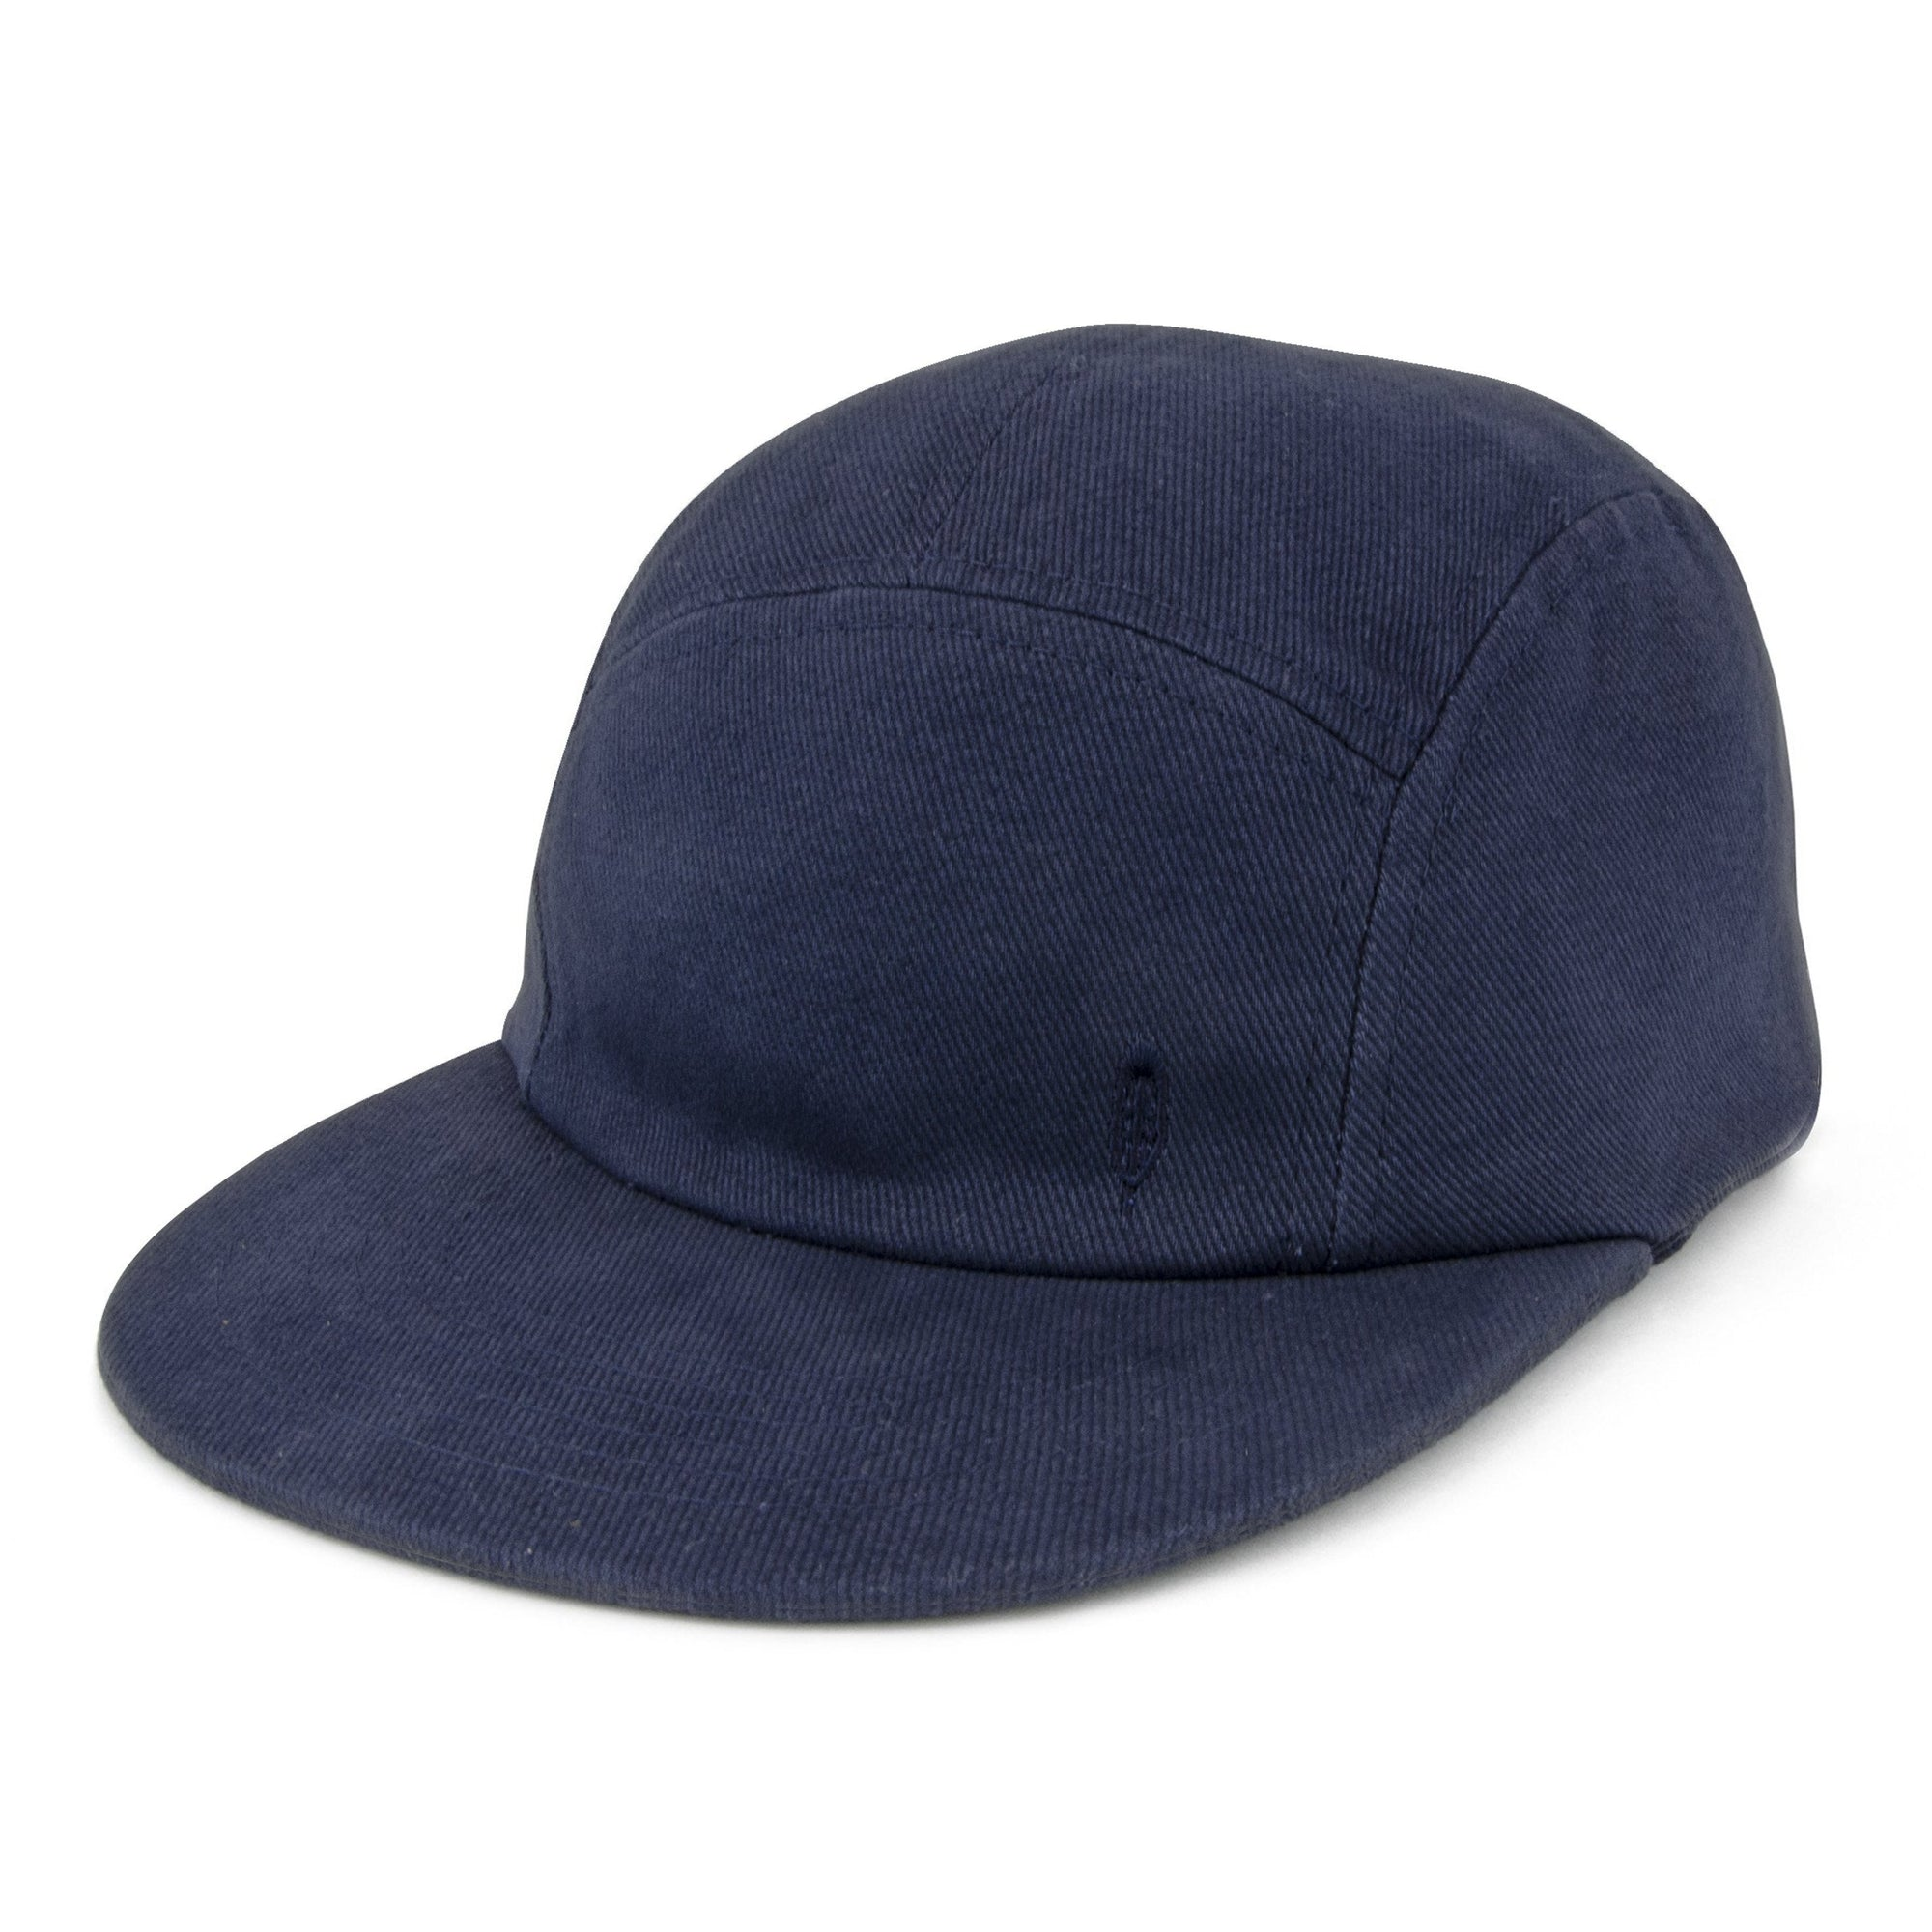 FIDIR » Mens 5 Panel Hat - Five Panel Cap - Blue 5 Panel Cap